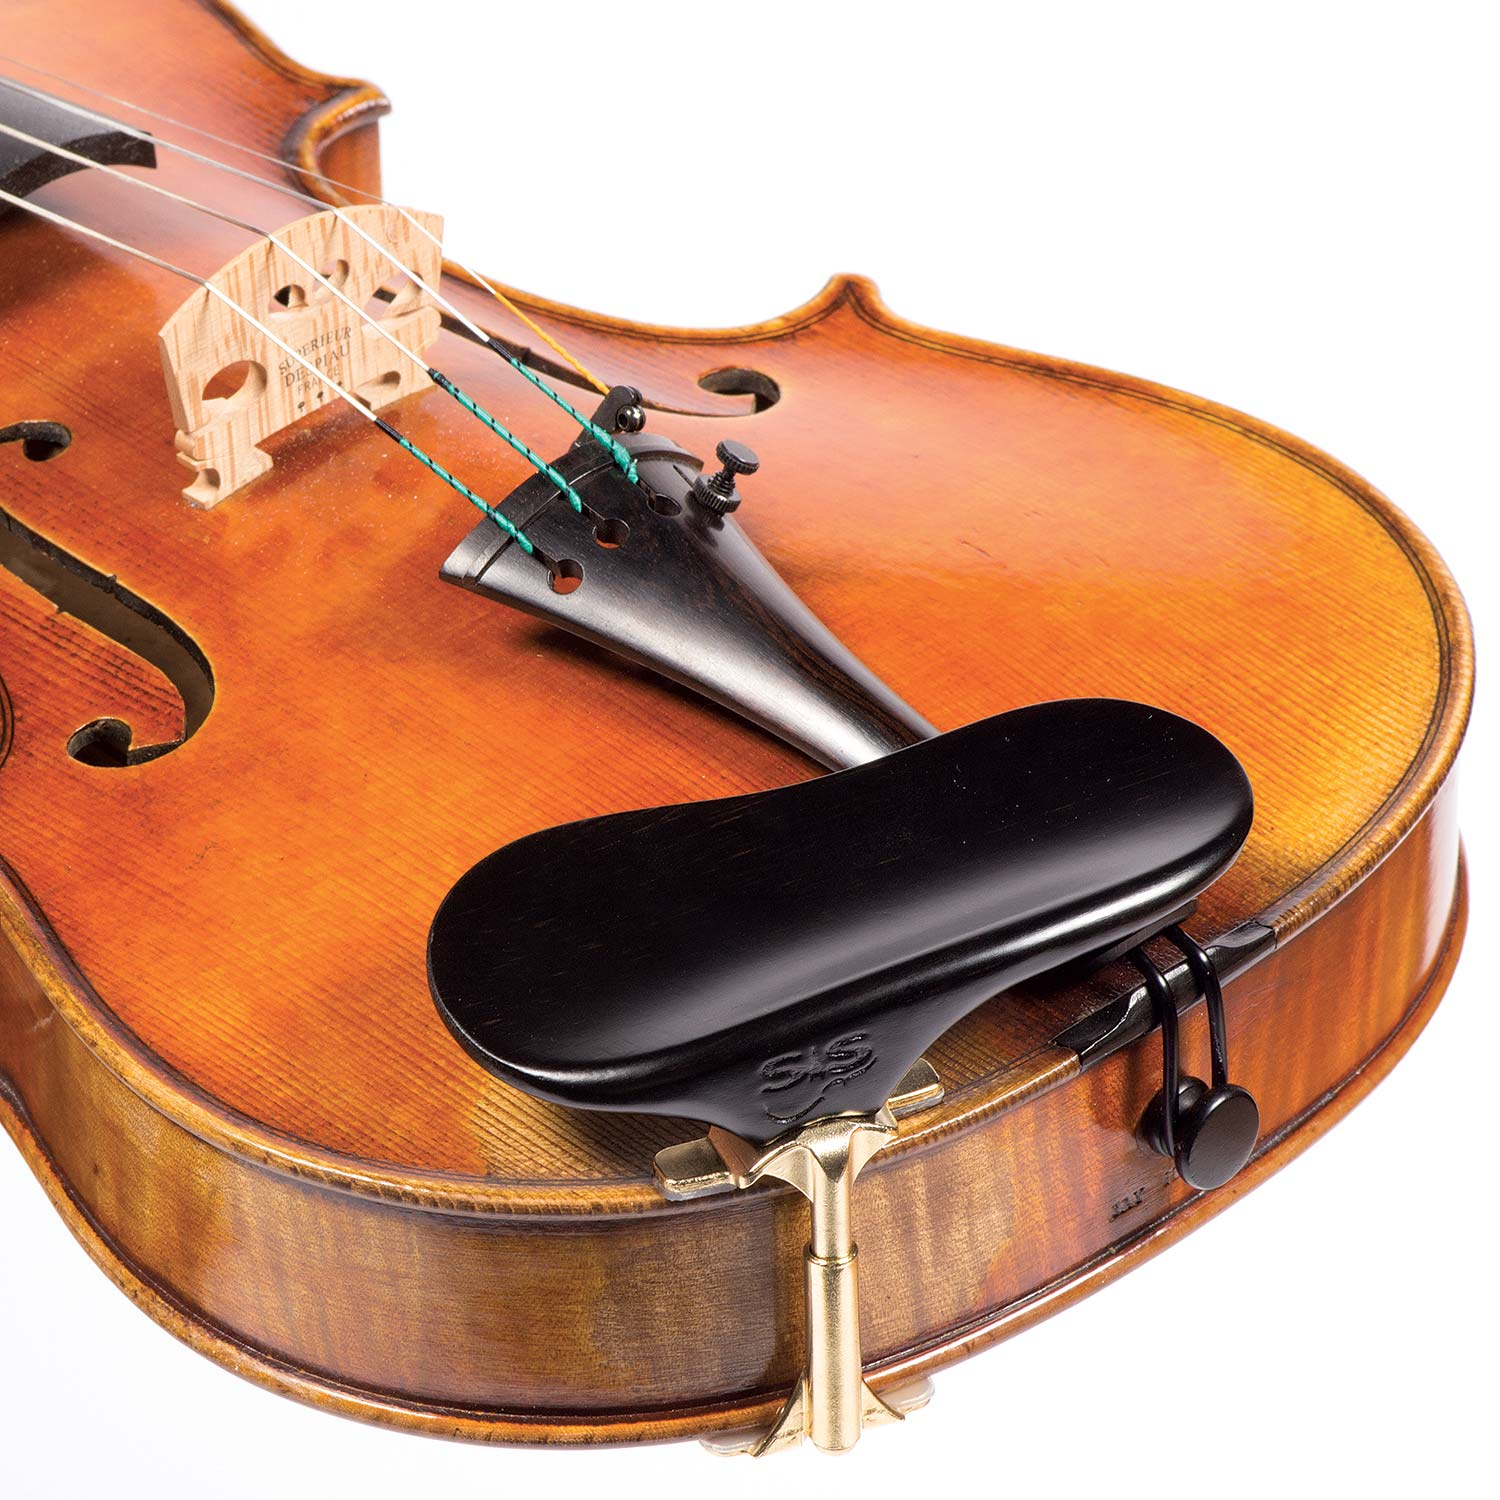 SAS Ebony Chinrest for 3/4-4/4 Violin or Viola with 24mm Plate Height and Gold-Plated Bracket